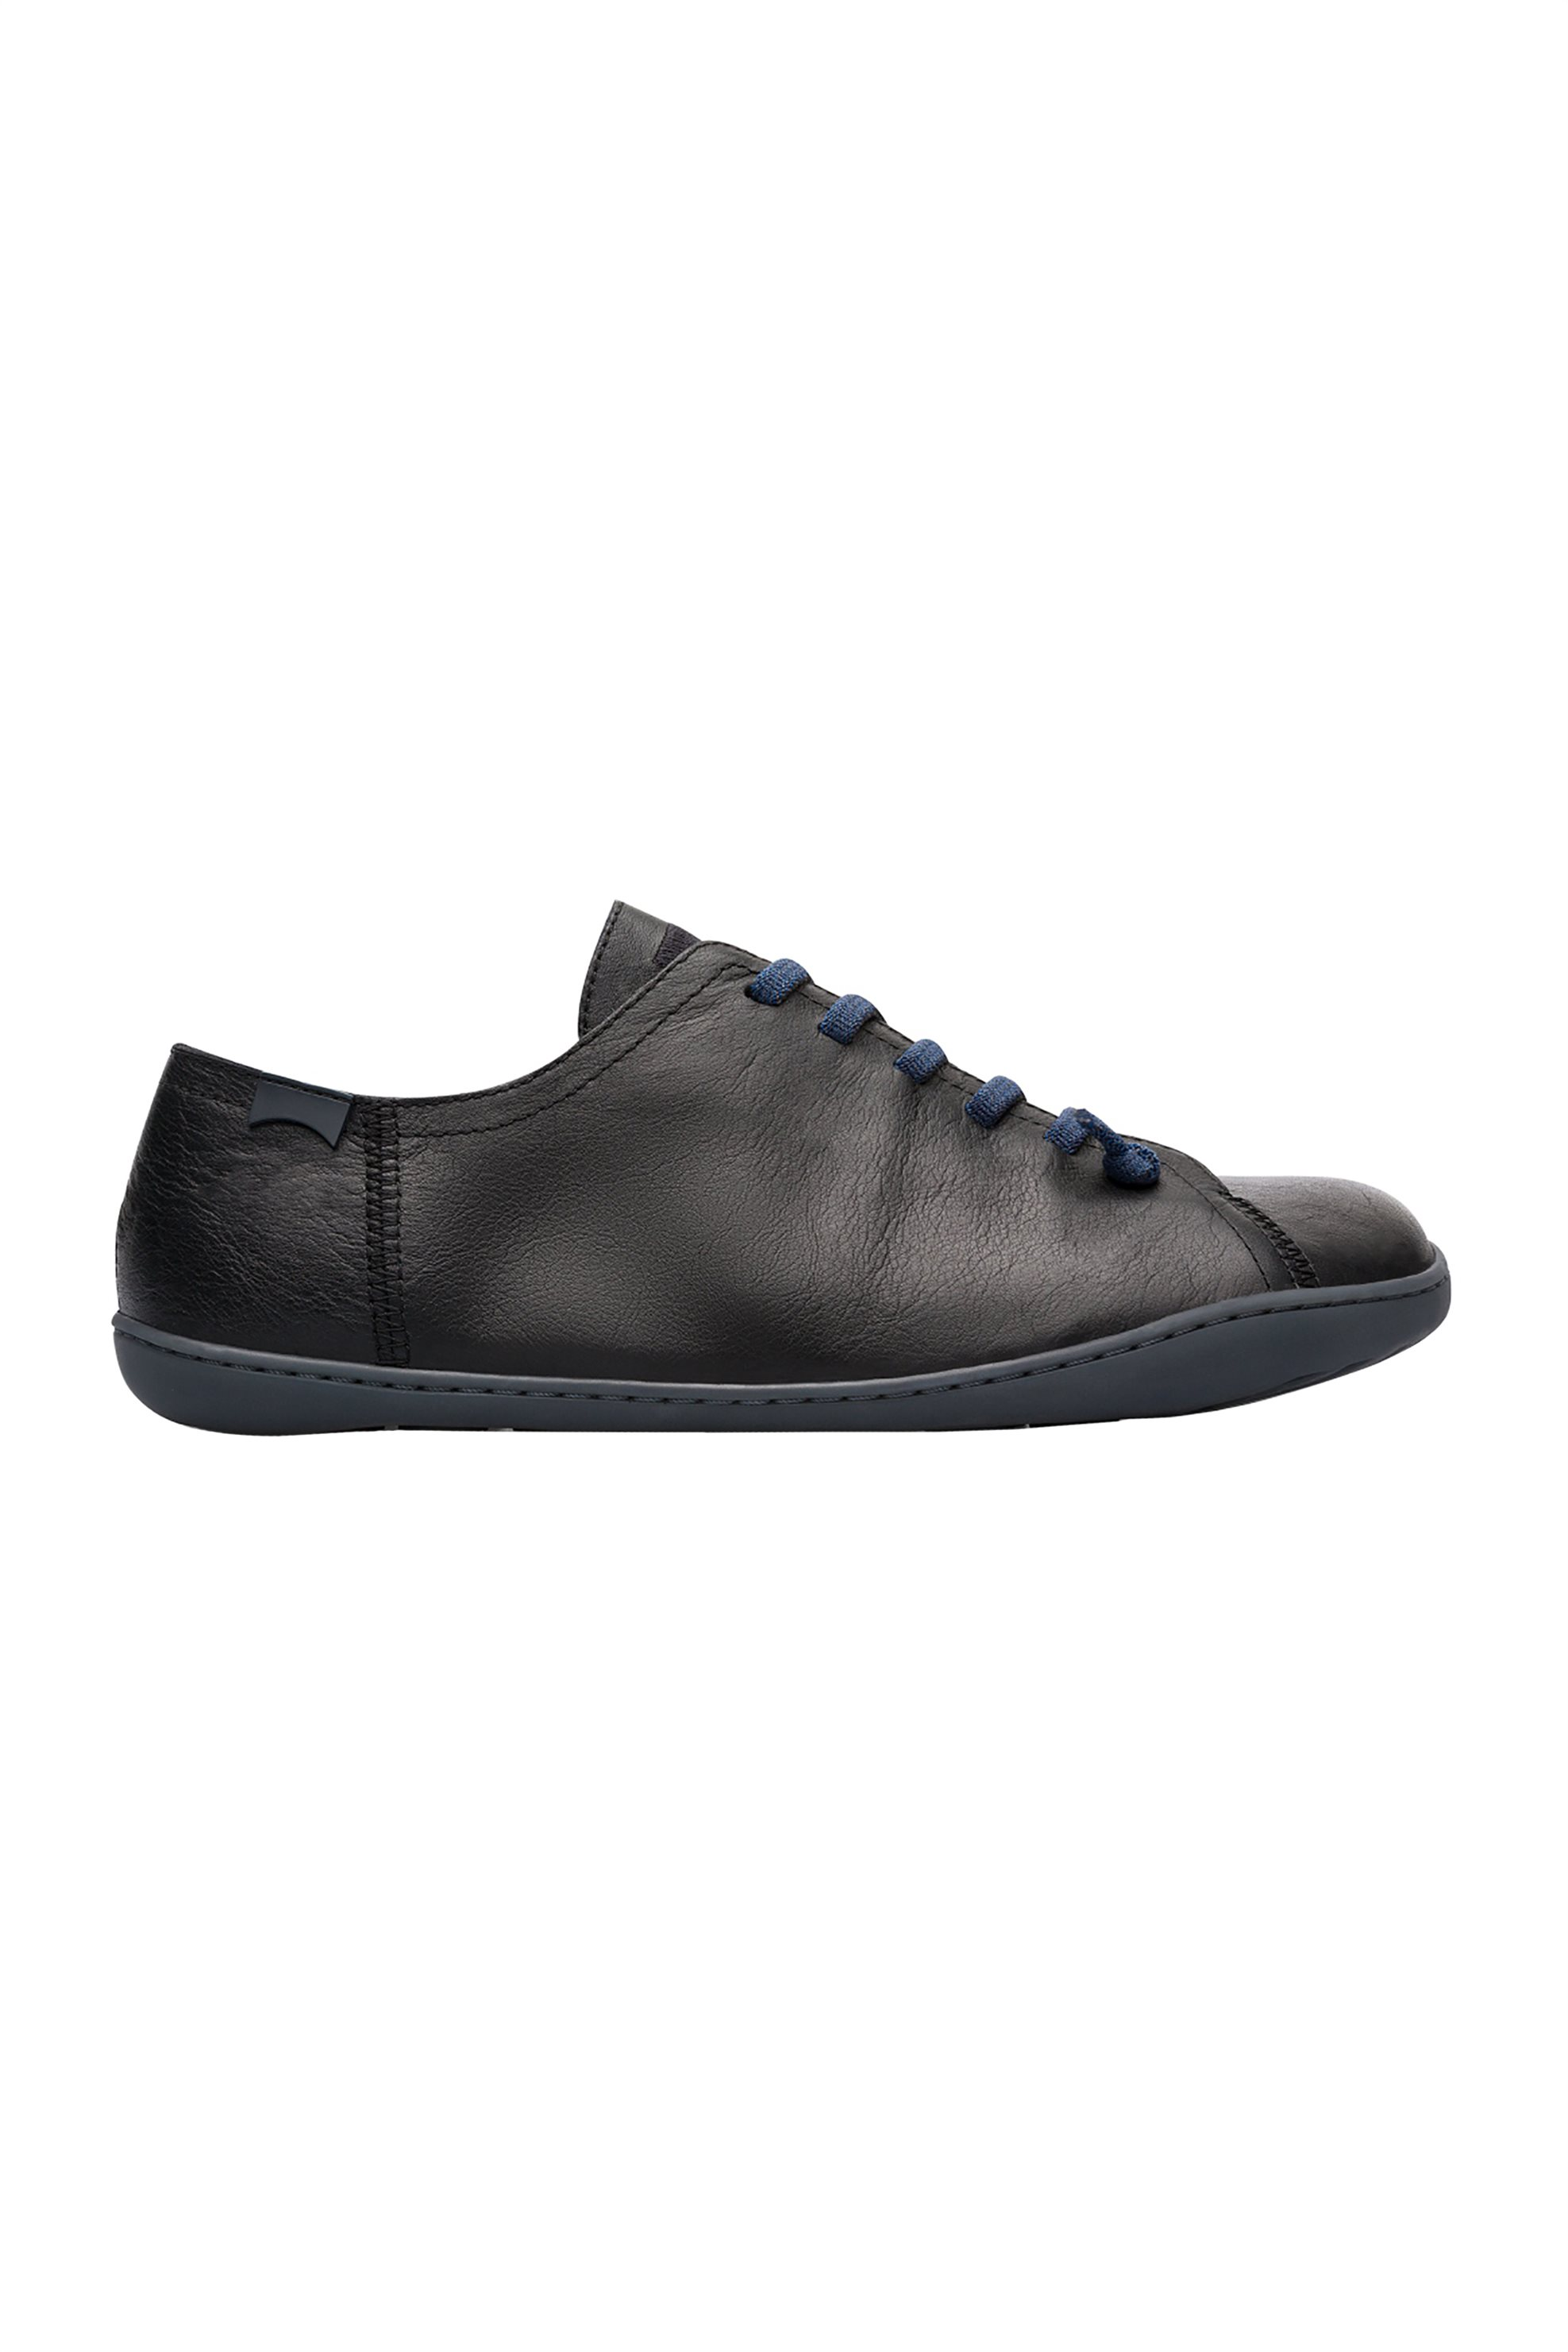 551669edbe6 Παπούτσια CAMPER - Roe Shoes Collection